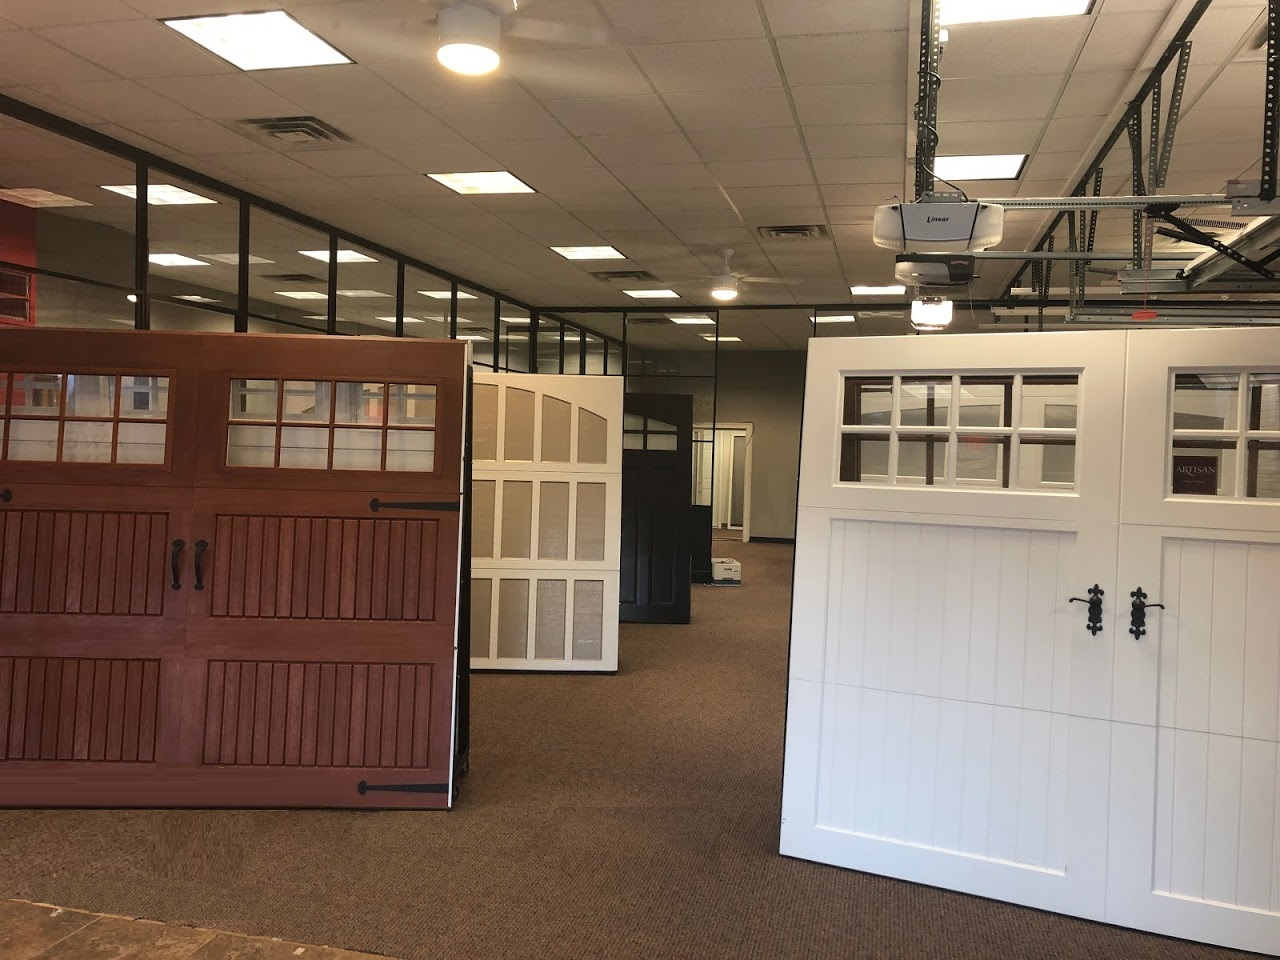 Visit Our New Showroom & Parts Counter; Showroom filled with Garage Doors; Overhead Doors Co. of Central Jersey Garage Doors, Central Jersey Overhead Door Company